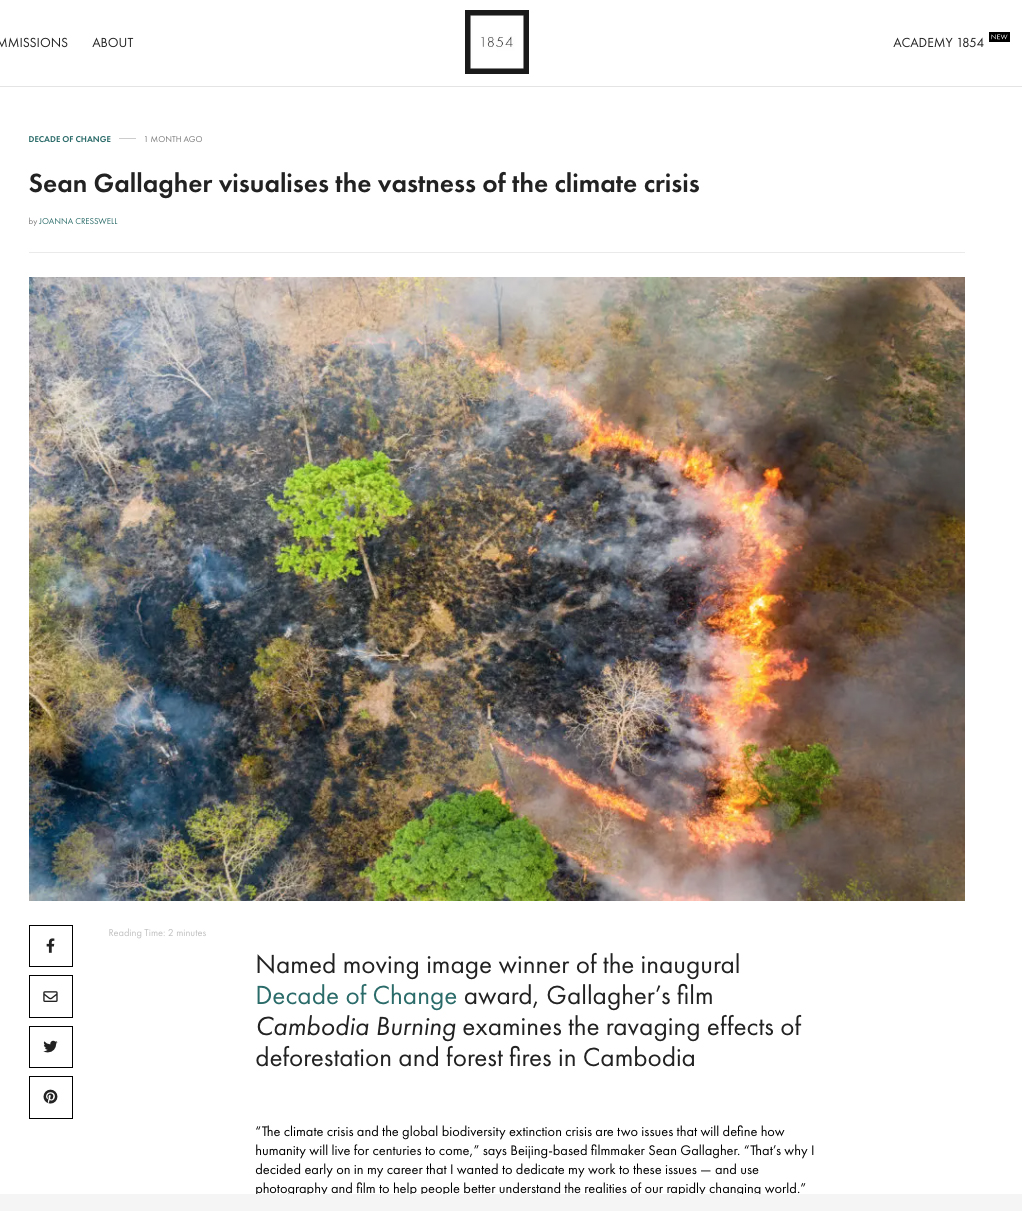 climate-change-crisis-photography-sean-gallagher-1